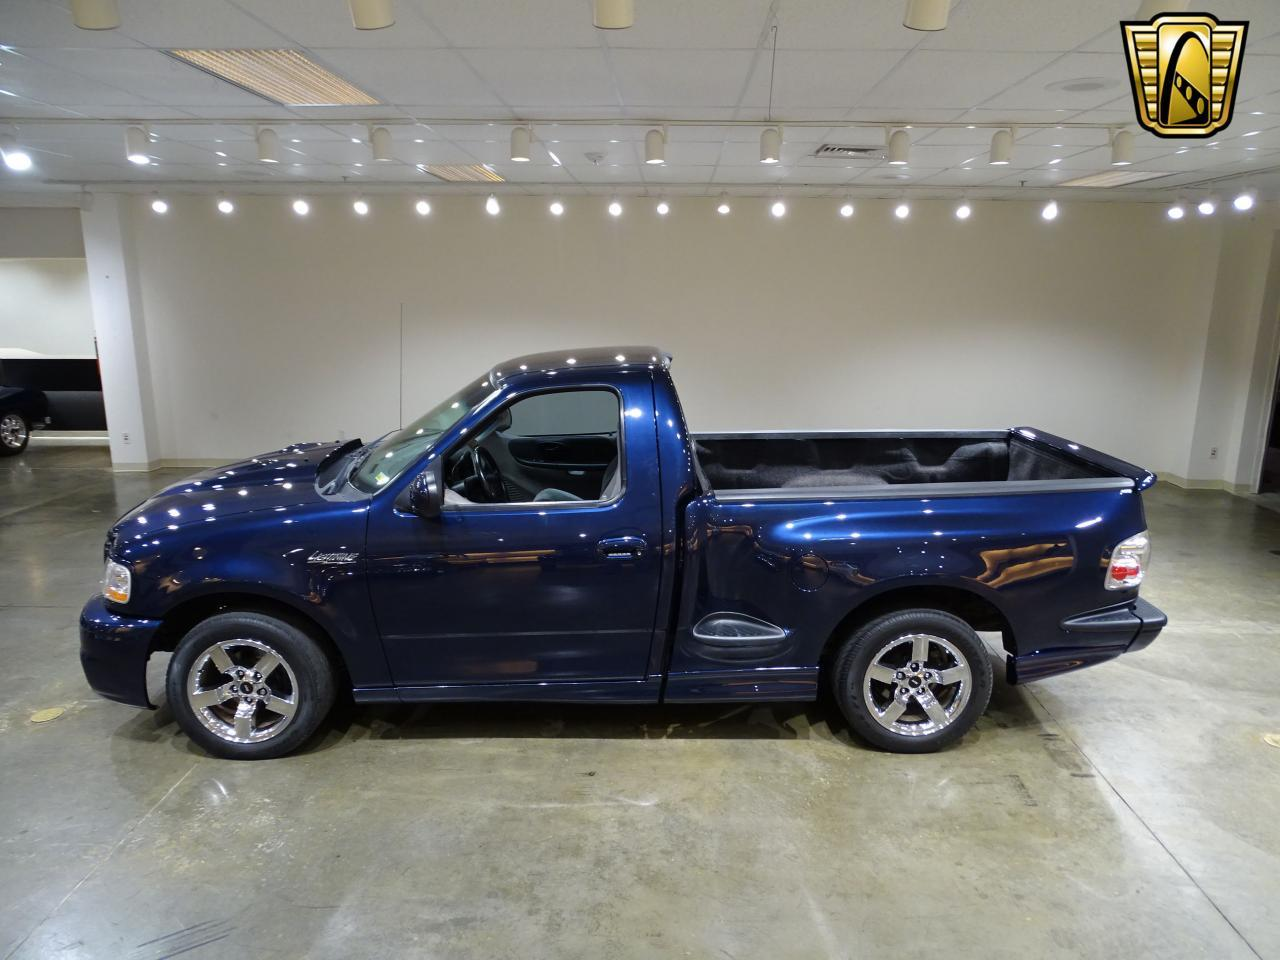 Large Picture of 2002 Ford F150 located in O'Fallon Illinois Offered by Gateway Classic Cars - St. Louis - MOAG